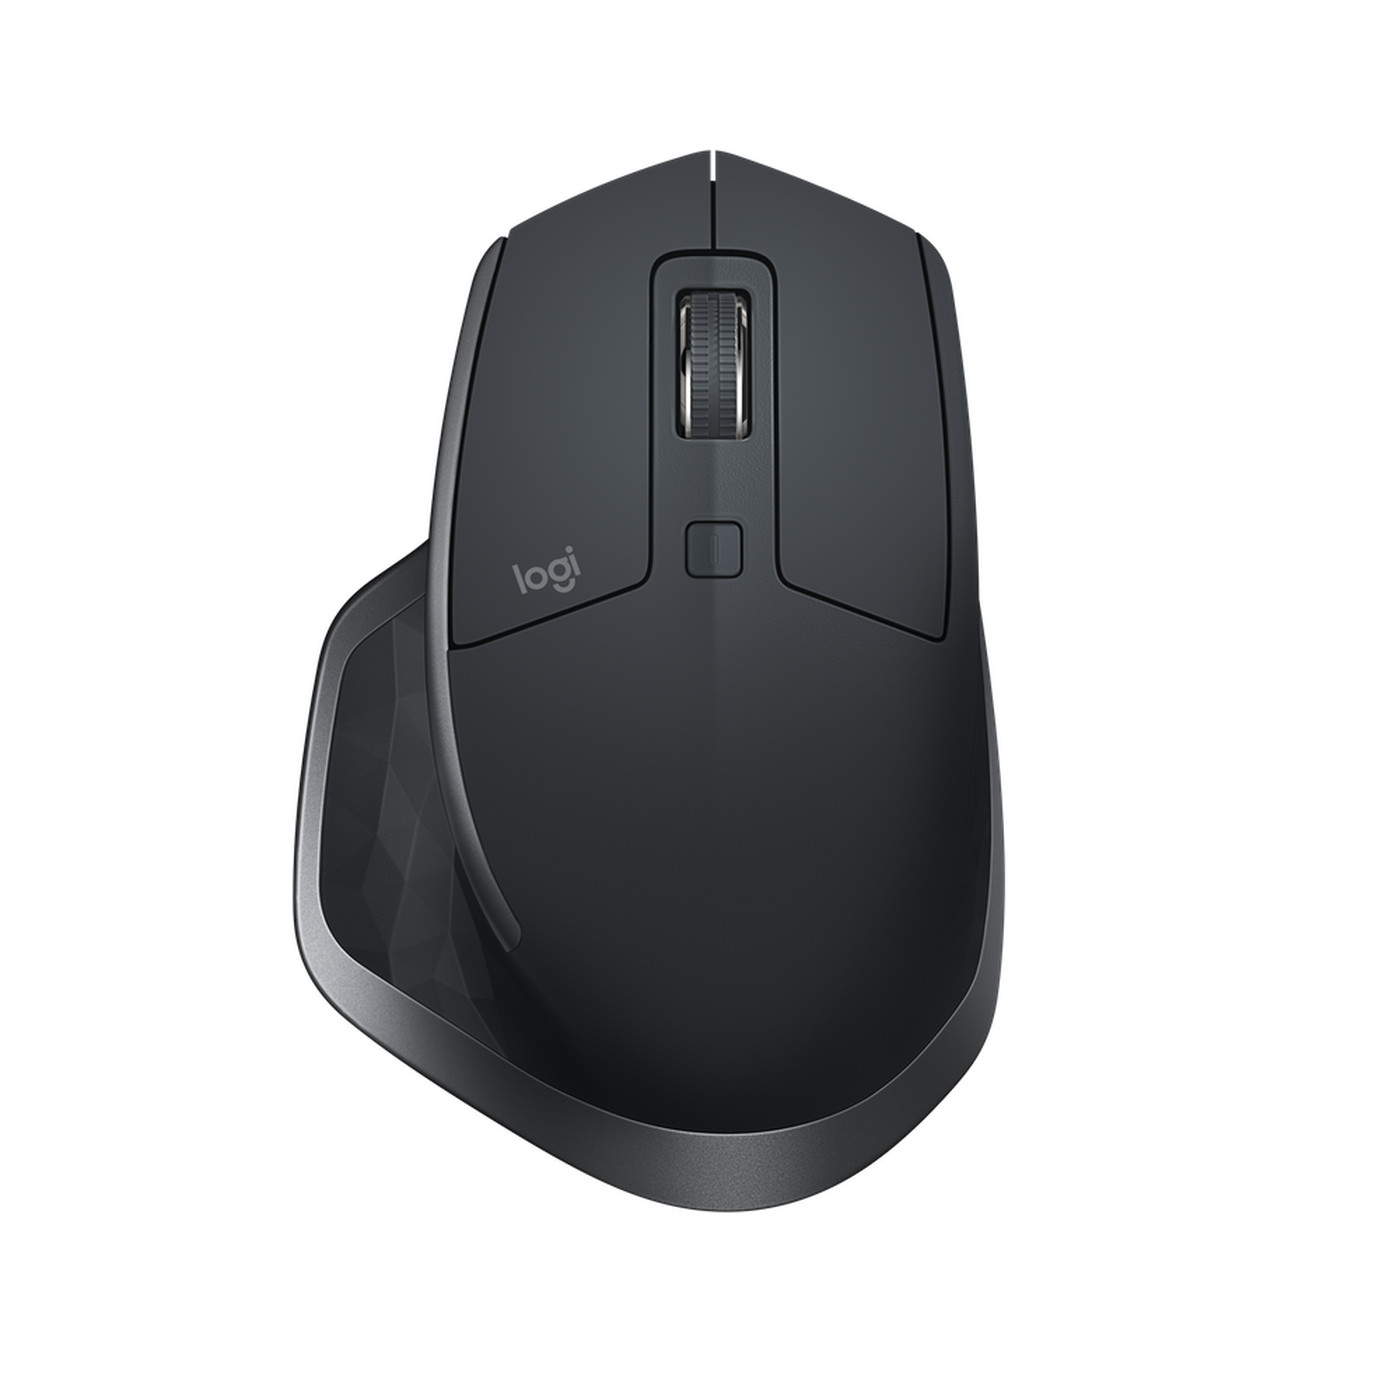 Logitechs Best Mice Get Better With The Mx Master 2s And Logitech M331 Silent Plus Cordless Mouse Anywhere Verge